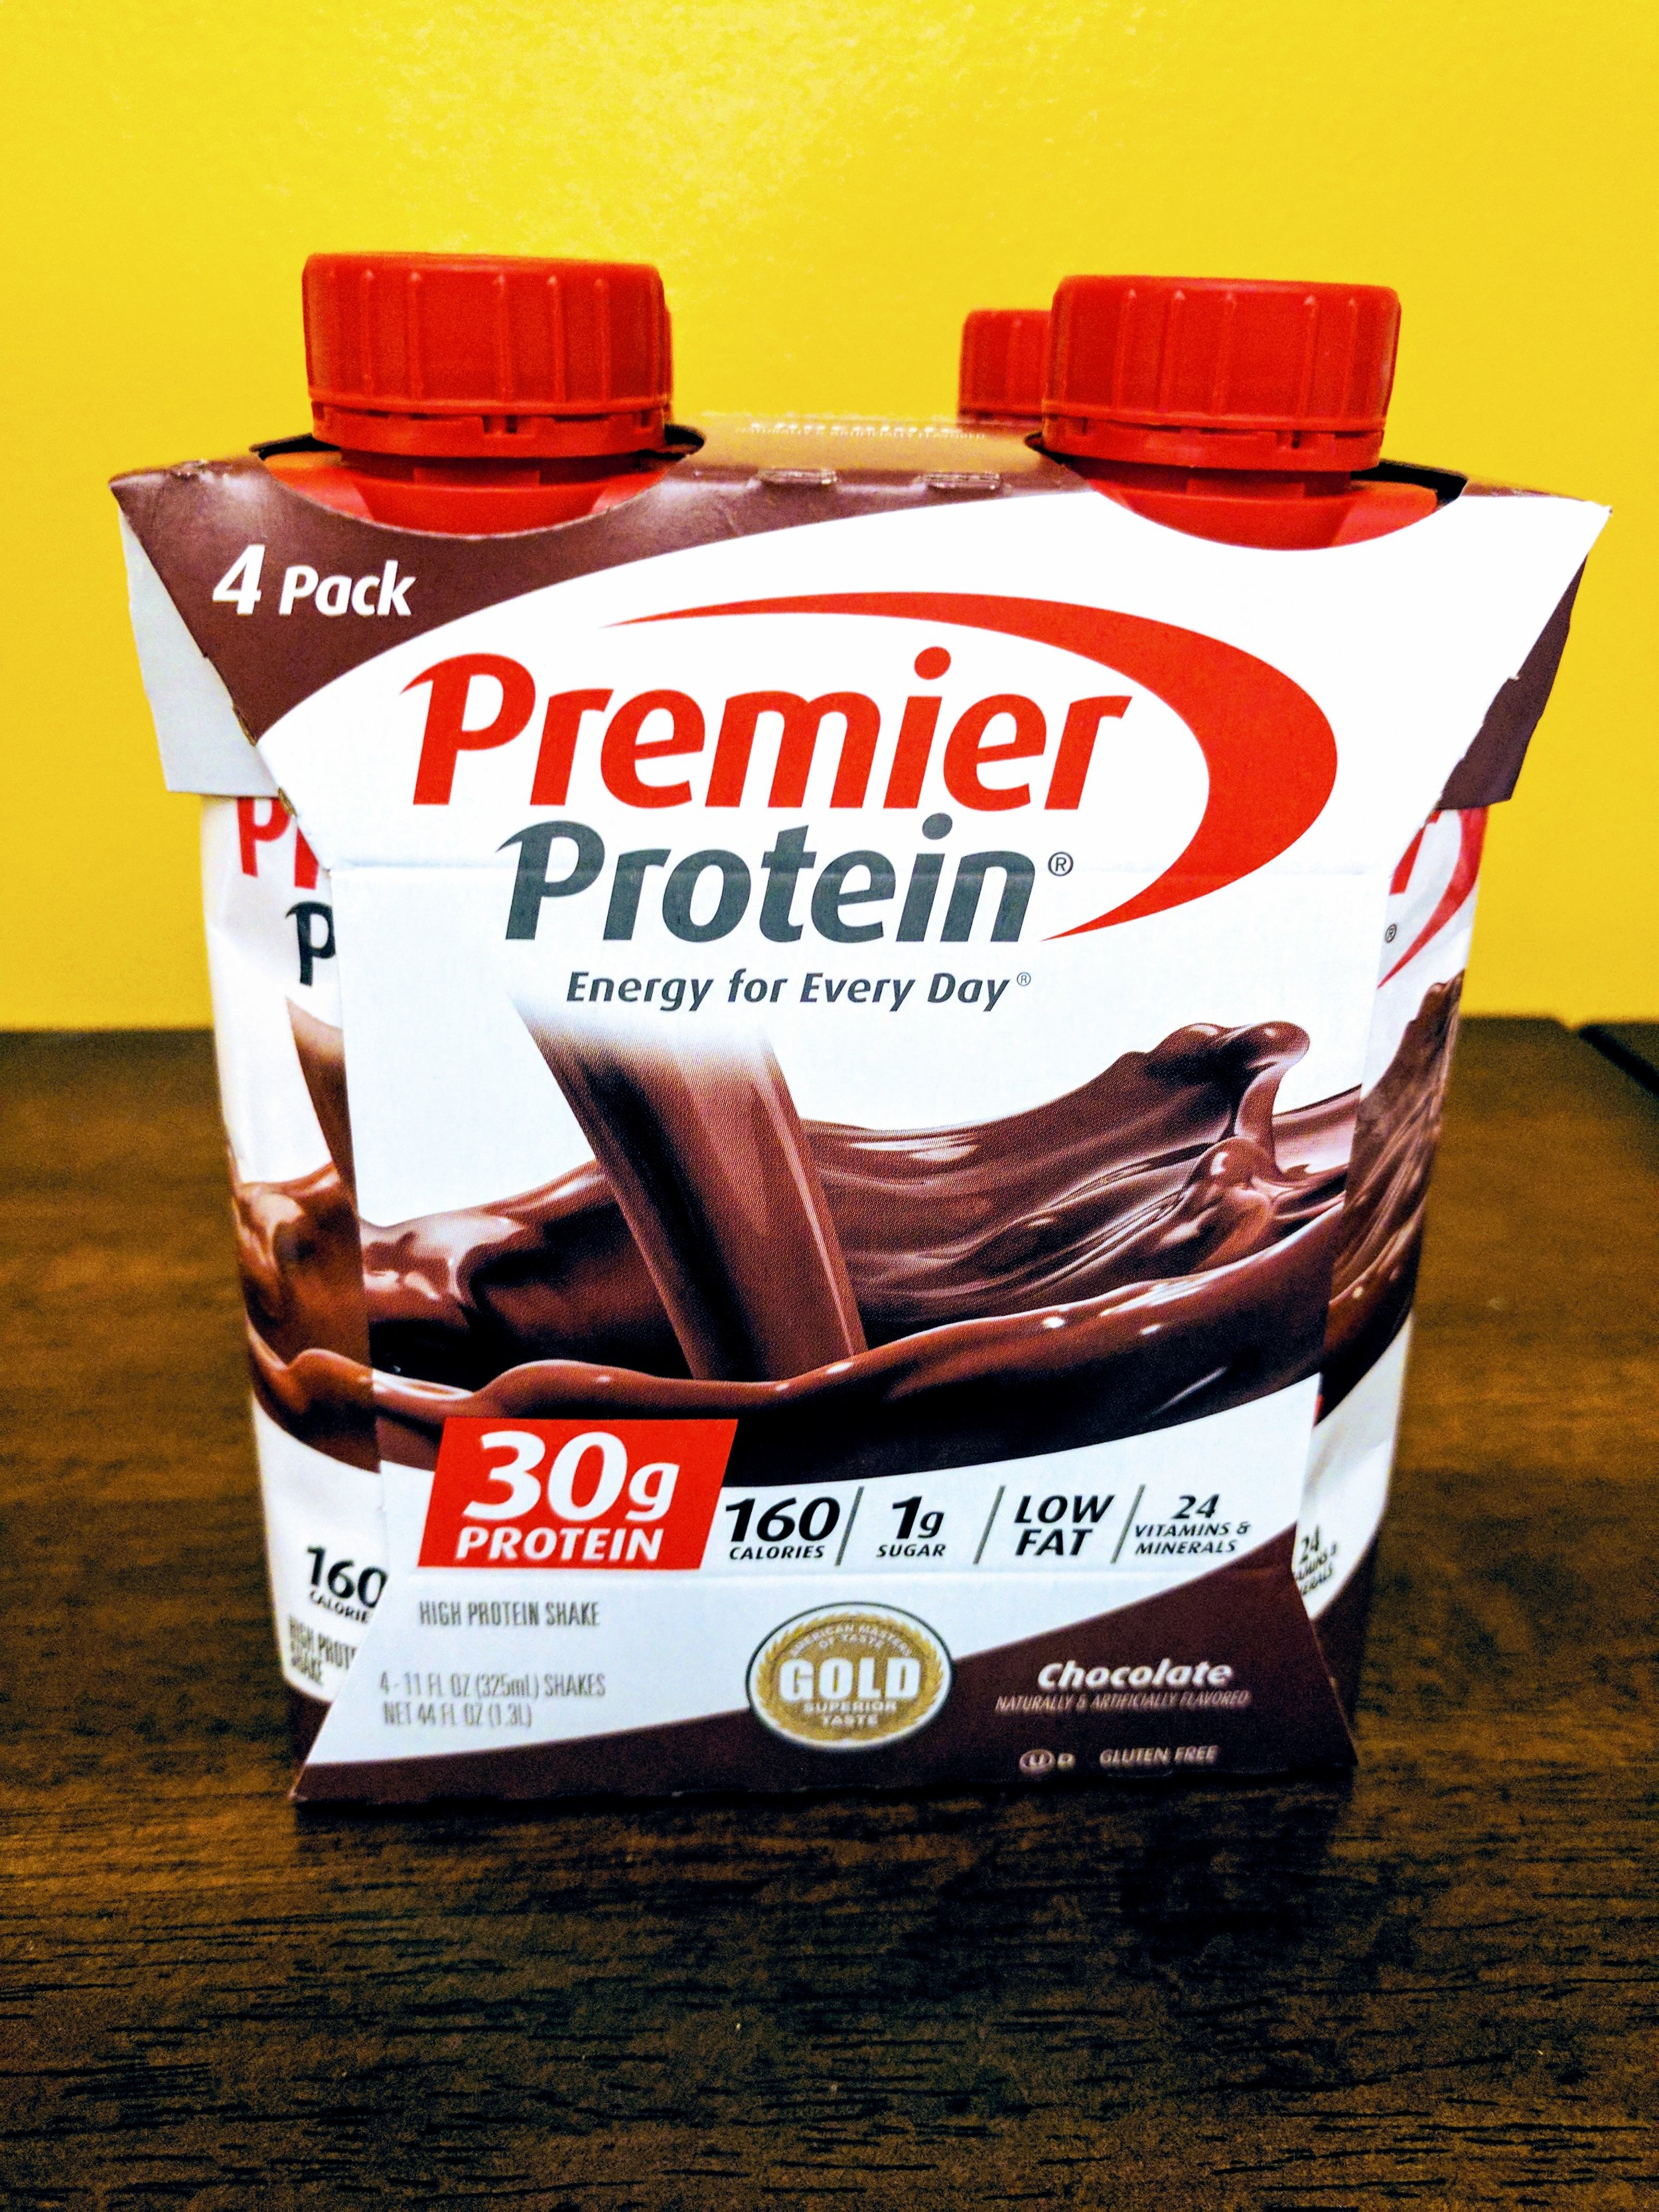 Q: - Is it true that Premier Protein® drinks have been changed in a way that they can't be absorbed anymore? I heard they changed their ingredients and it no longer provides the necessary protein. I'm really worried because I love these drinks, and they have really helped me hit my protein goal after I had my weight loss surgery. I haven't been able to tolerate any other brand. What am I going to do?! Thanks,– ChocoProteinDrinker